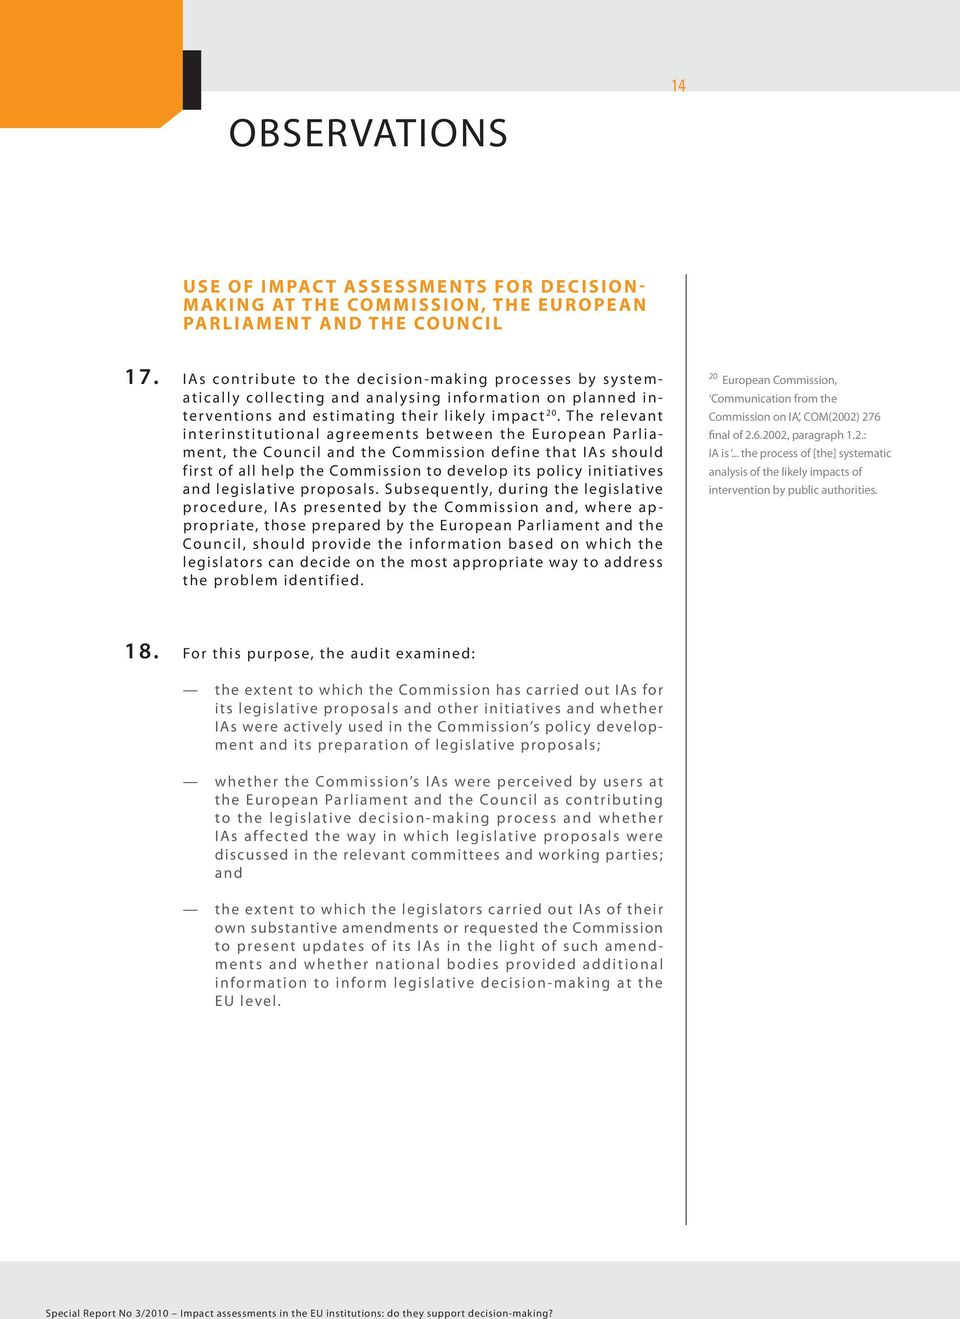 The relevant interinstitutional agreements between the European Parliament, the Council and the Commission define that IAs should first of all help the Commission to develop its polic y initiatives